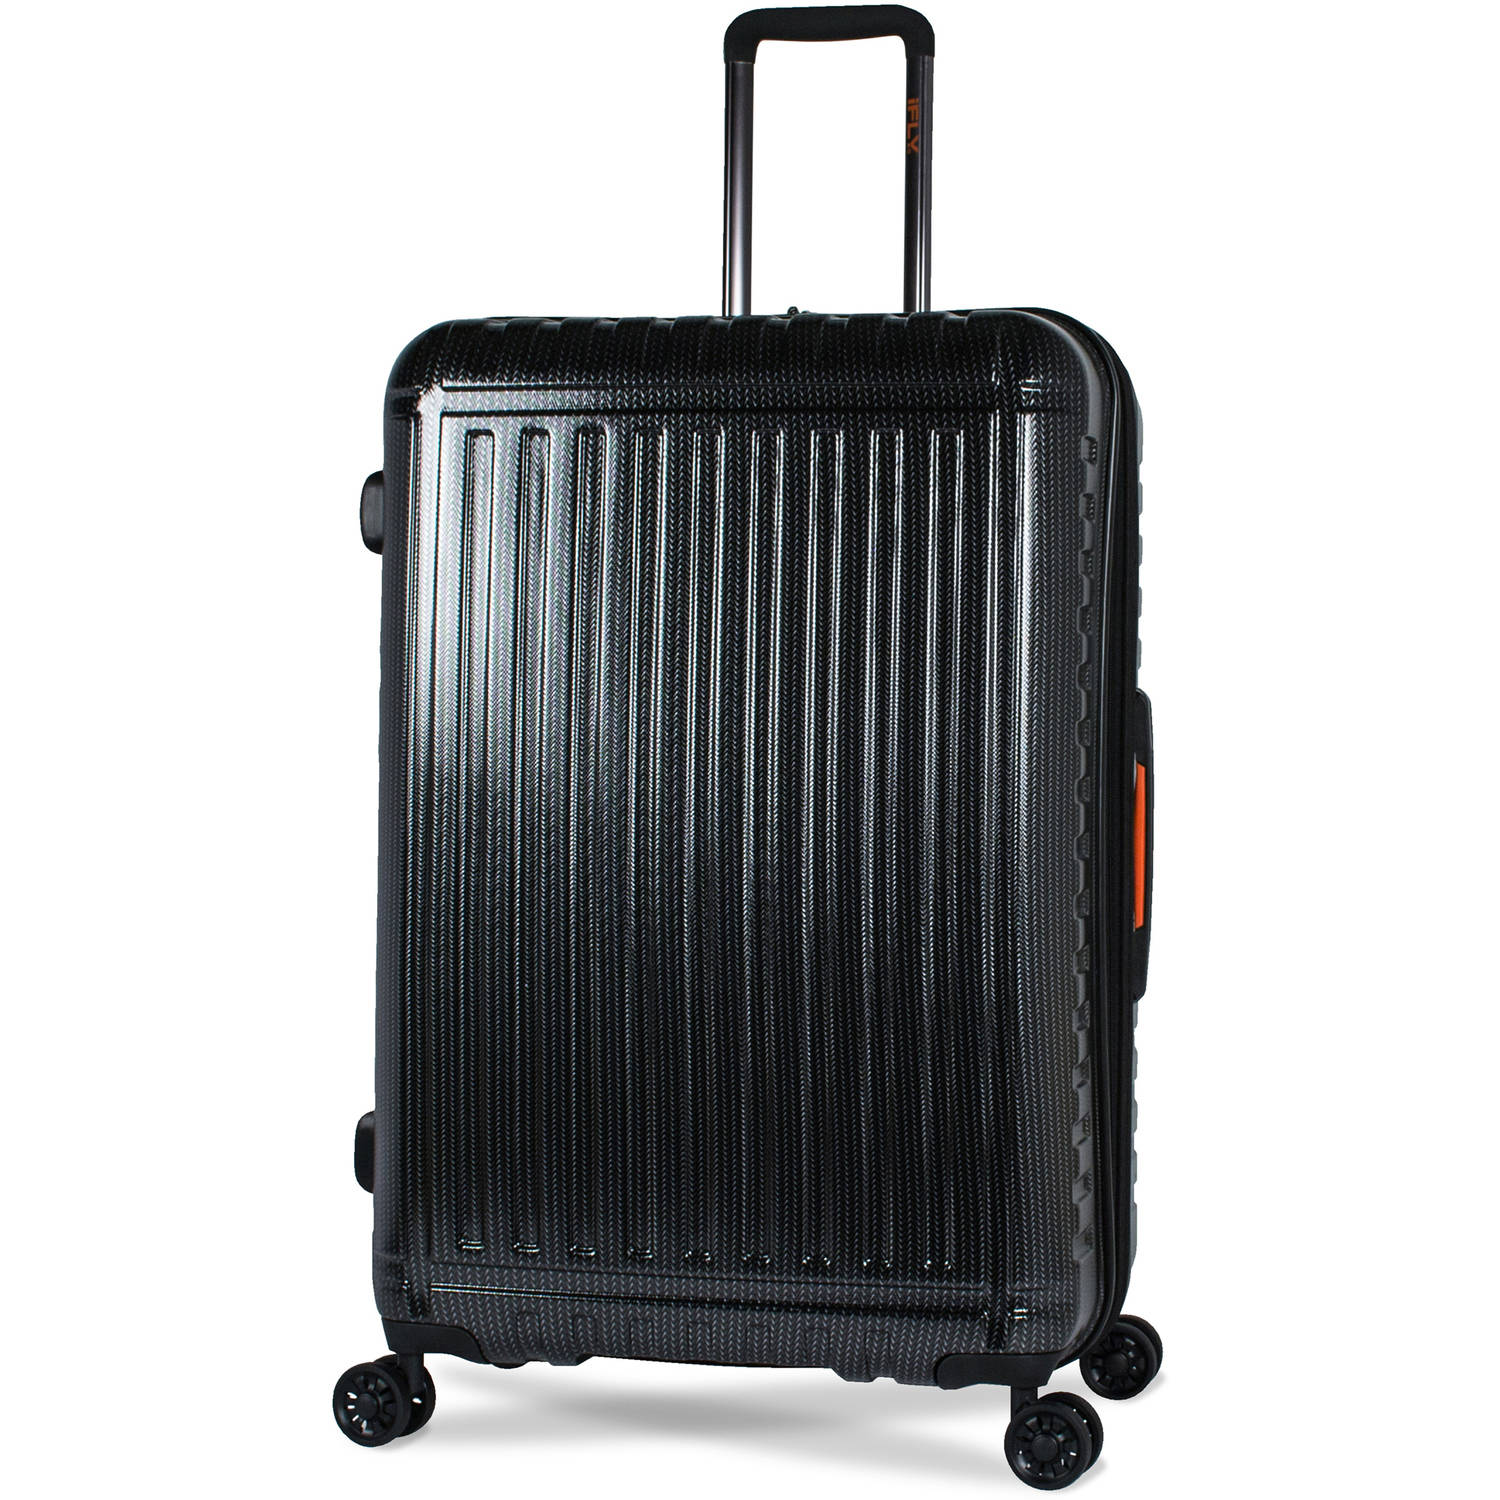 iFLY 28 Hard-Sided Racer Luggage, Black